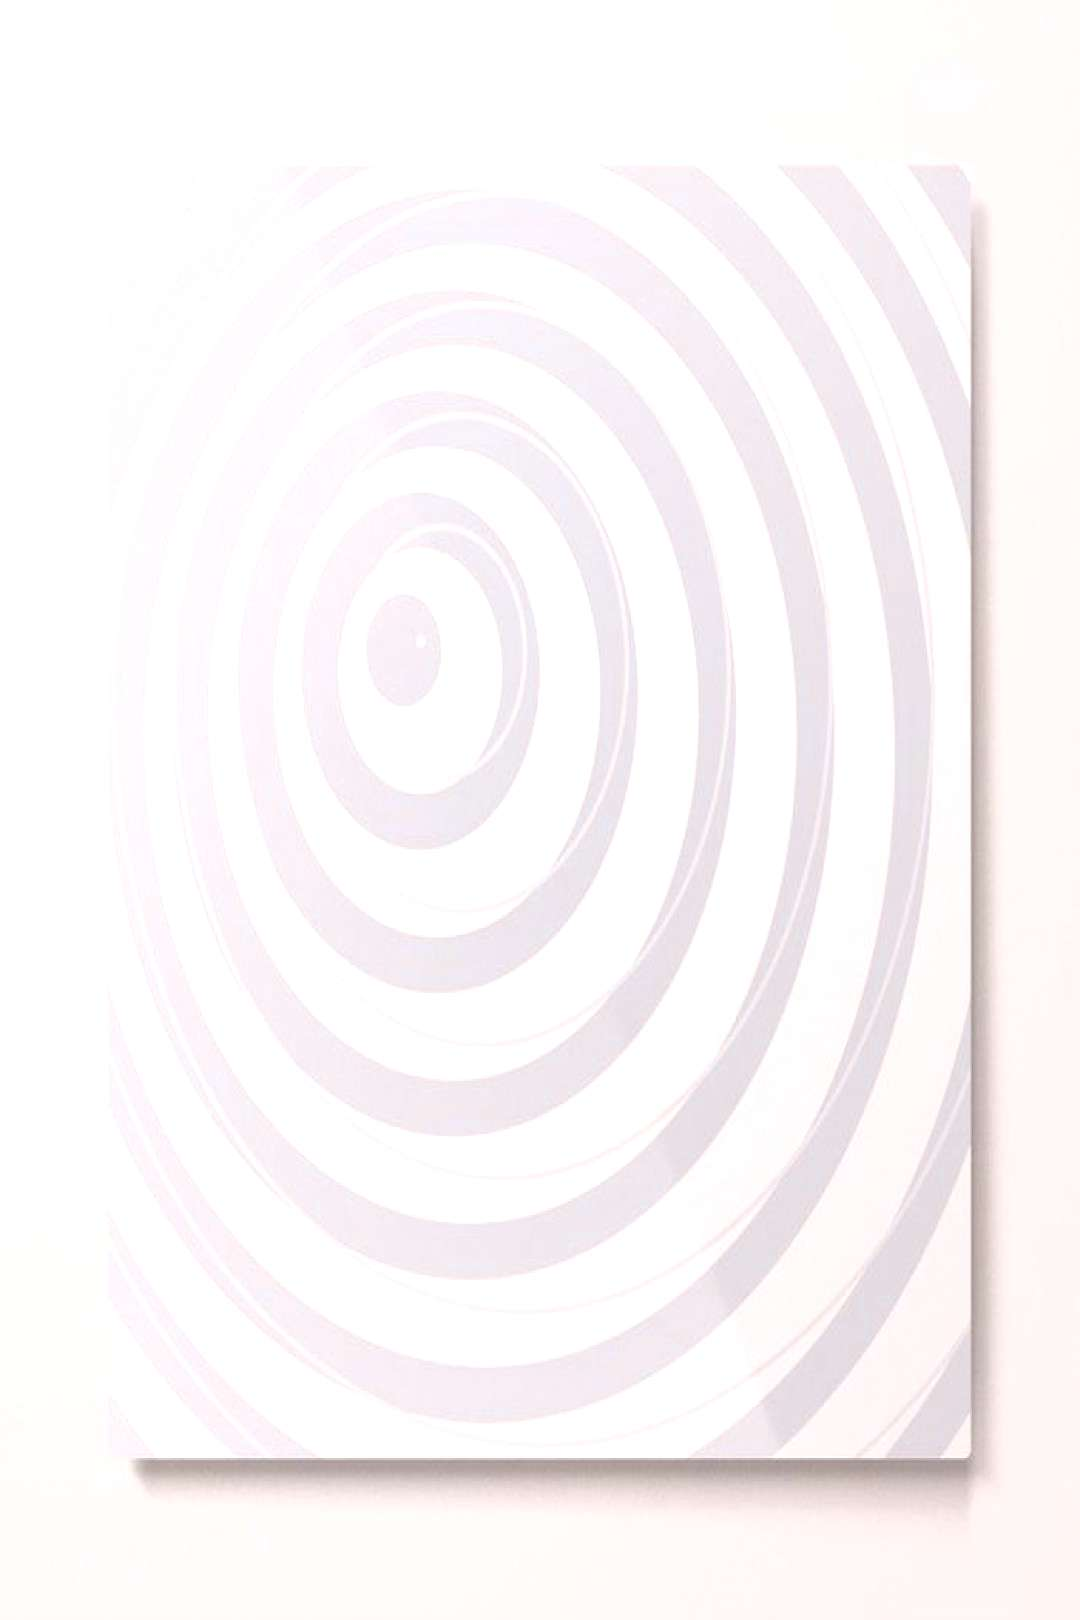 orbits - circle pattern in ice gray and white Metal Print by vrijformaat